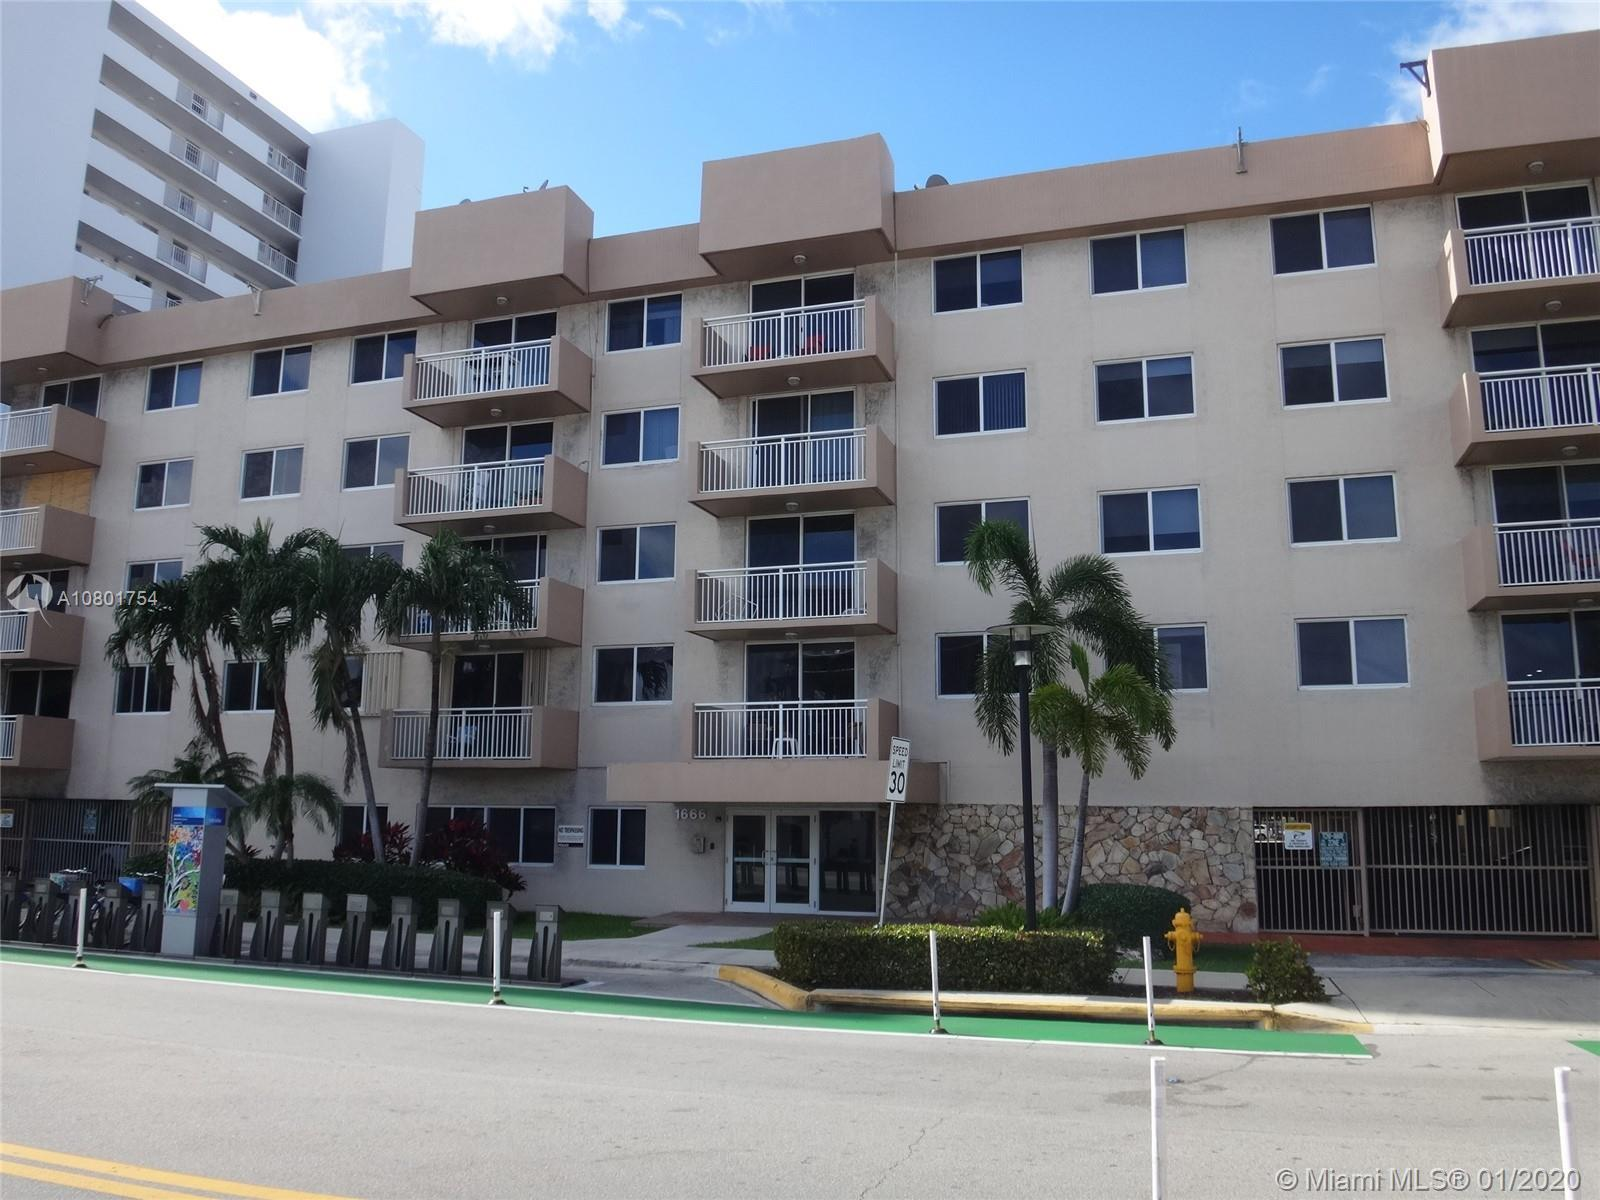 Great 2 Bedroom/2 Bathroom Condo in the Heart of South Beach! Unit Features Tile Floors Throughout.